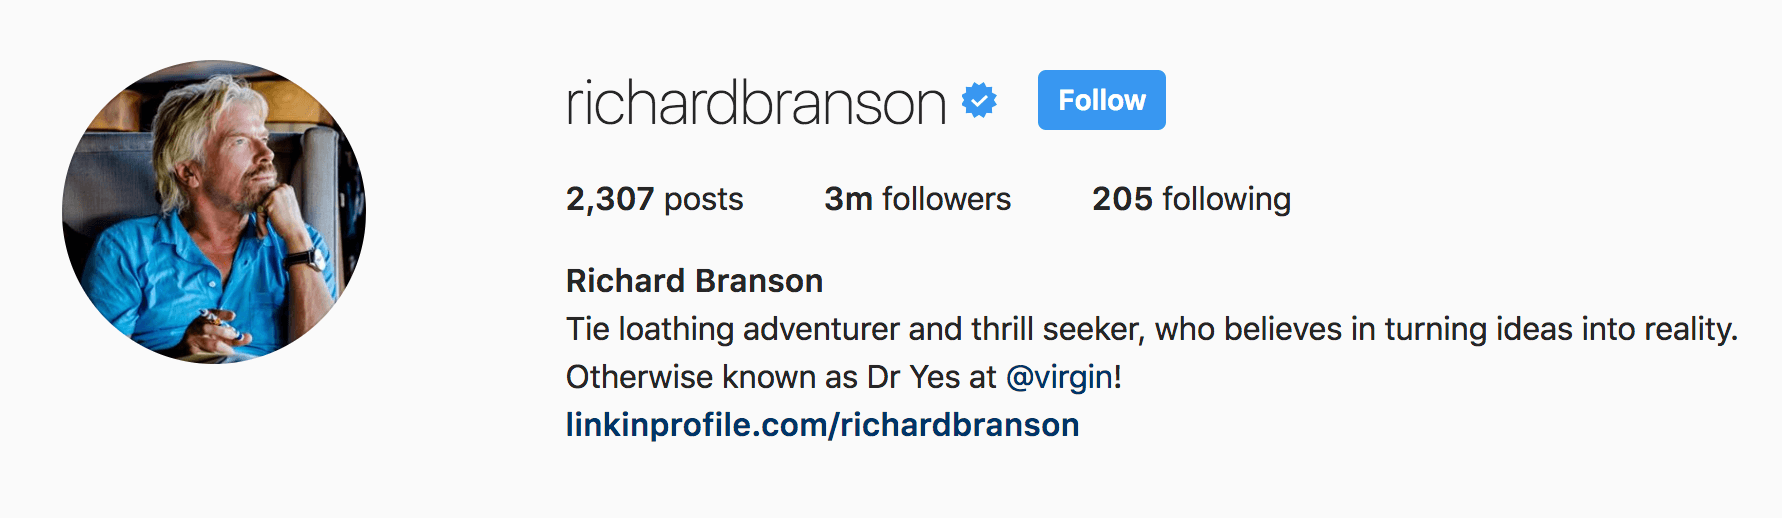 richard branson instagram bio